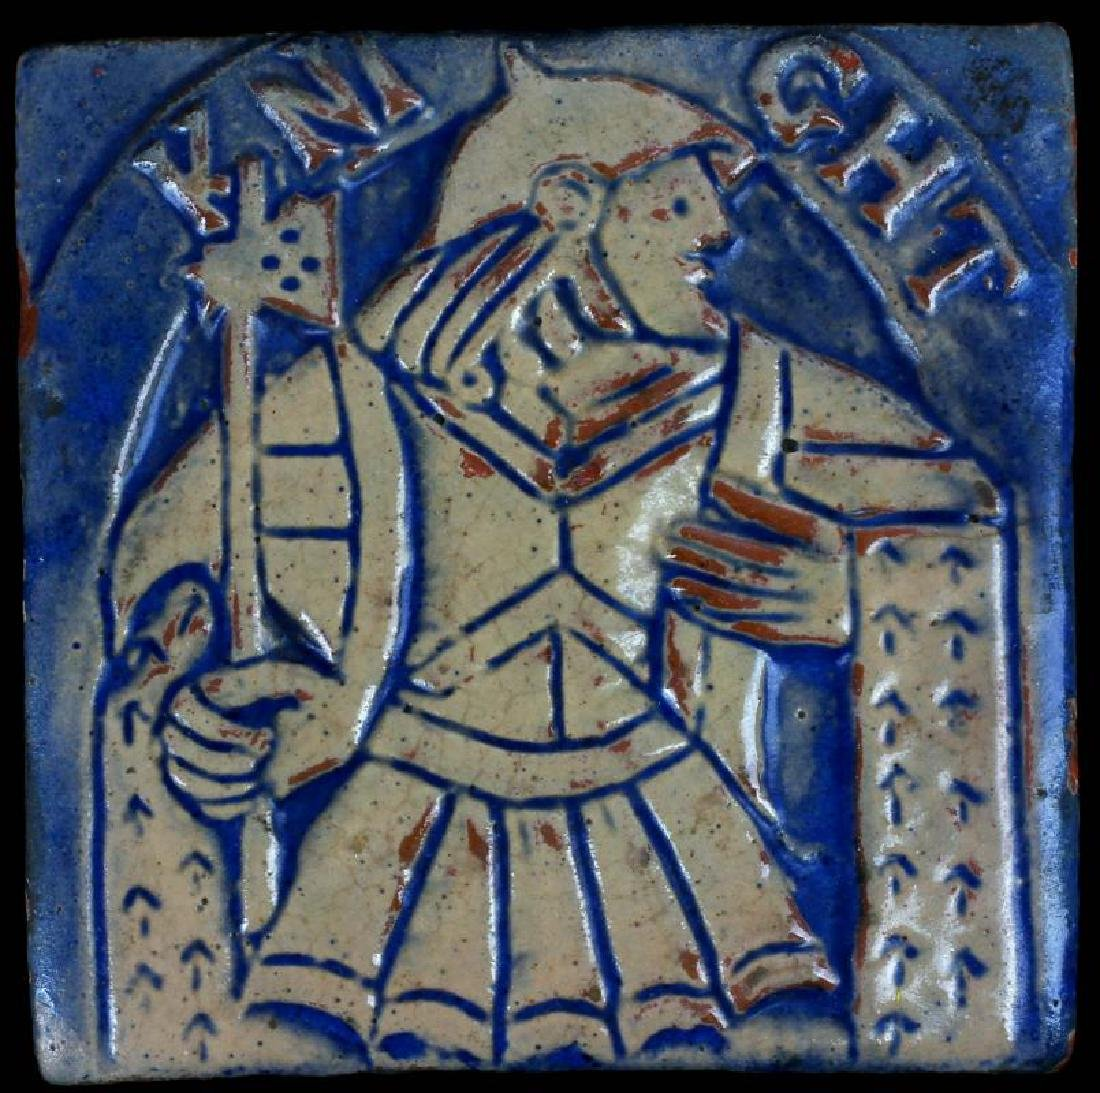 MORAVIAN TILE WORKS CANTERBURY SERIES 'KNIGHT'